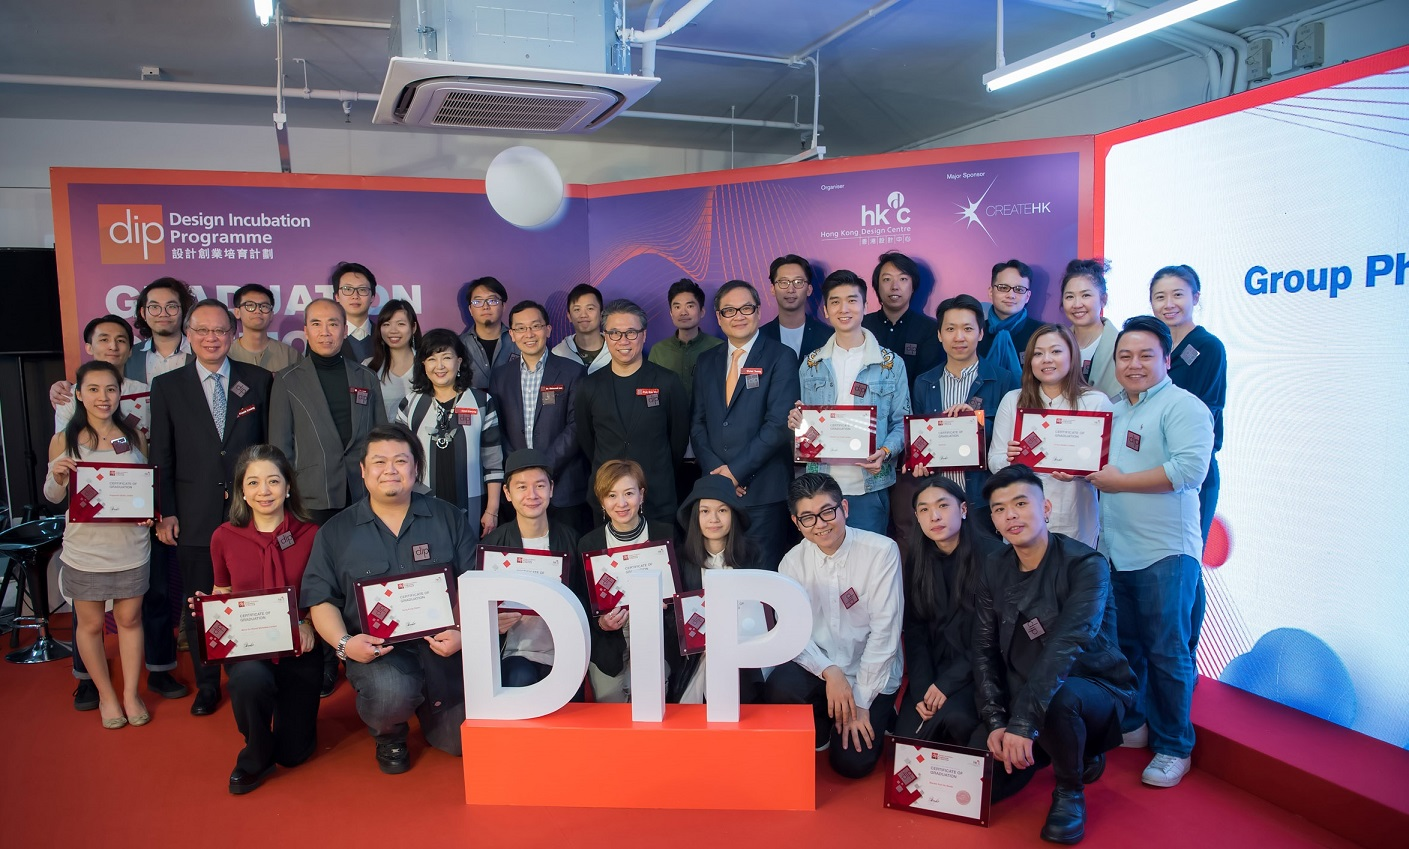 HKDC's Design Incubation Programme Graduation Ceremony - 42 Young Design Units Ready to Emerge as Hong Kong Design Force